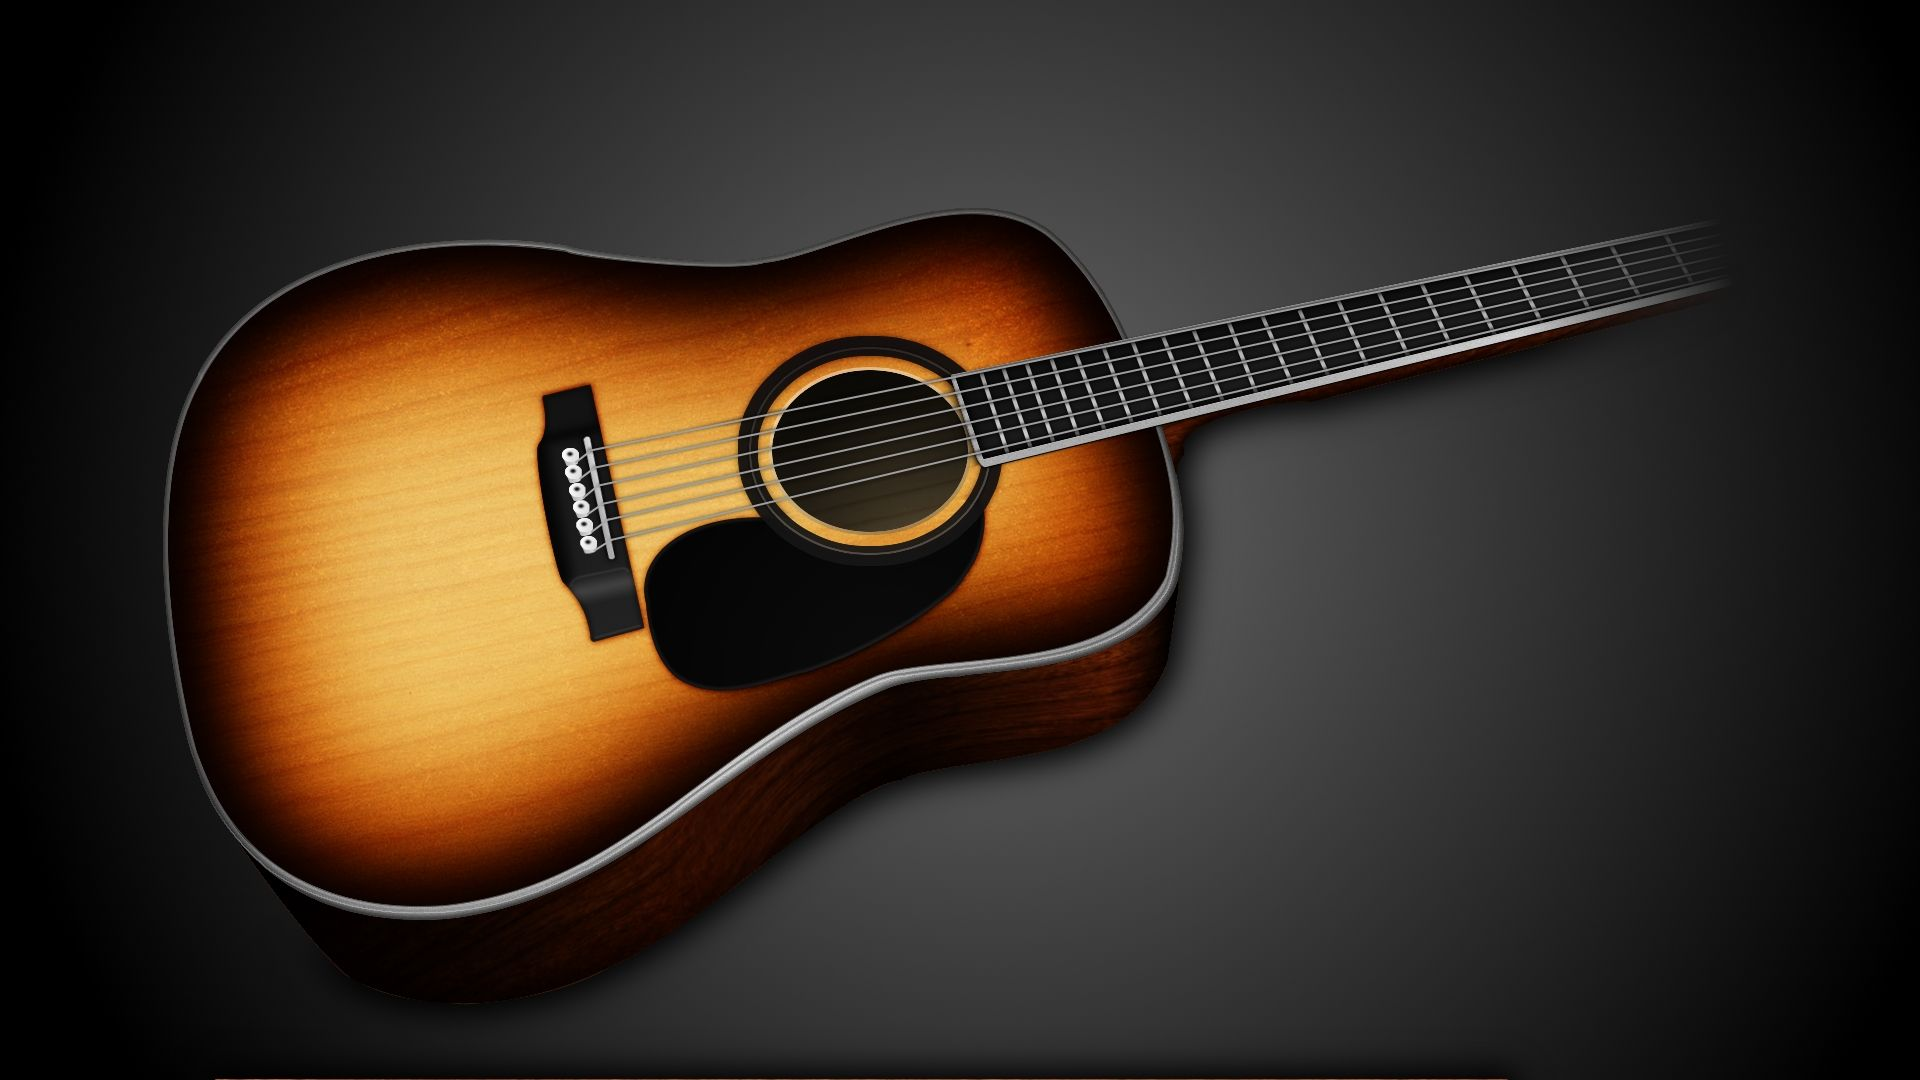 Acoustic Guitar, Background Wallpaper HD